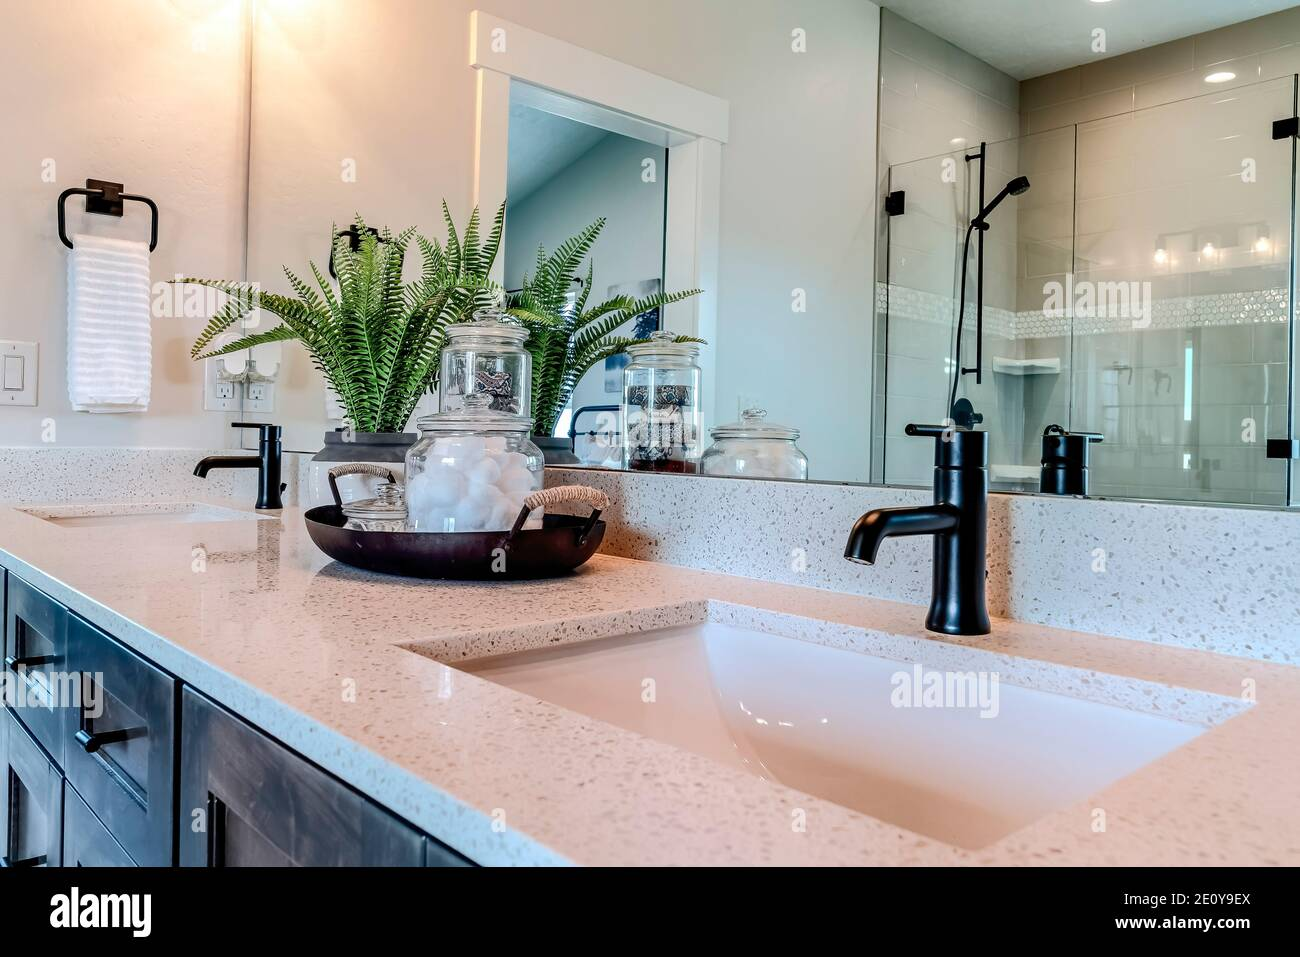 Double Sink Bathroom Vanity With Black Faucet And White Countertop Over Cabinets Stock Photo Alamy